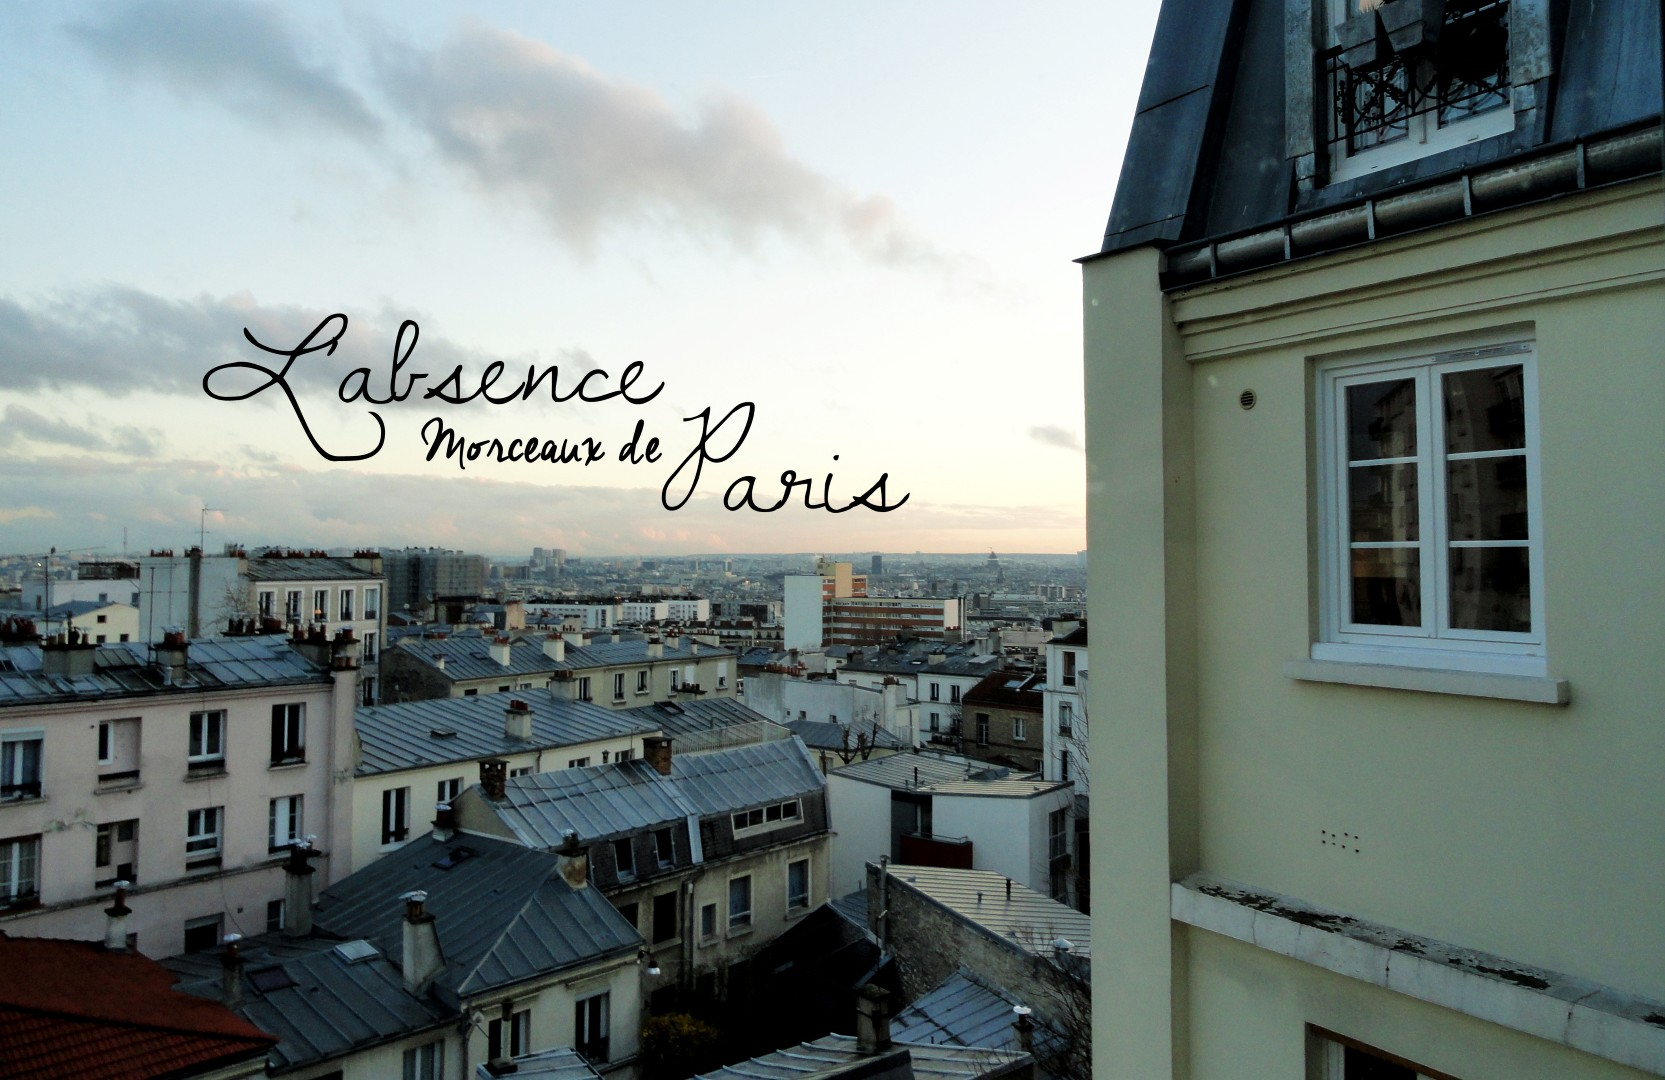 L'absence - Vue de Paris